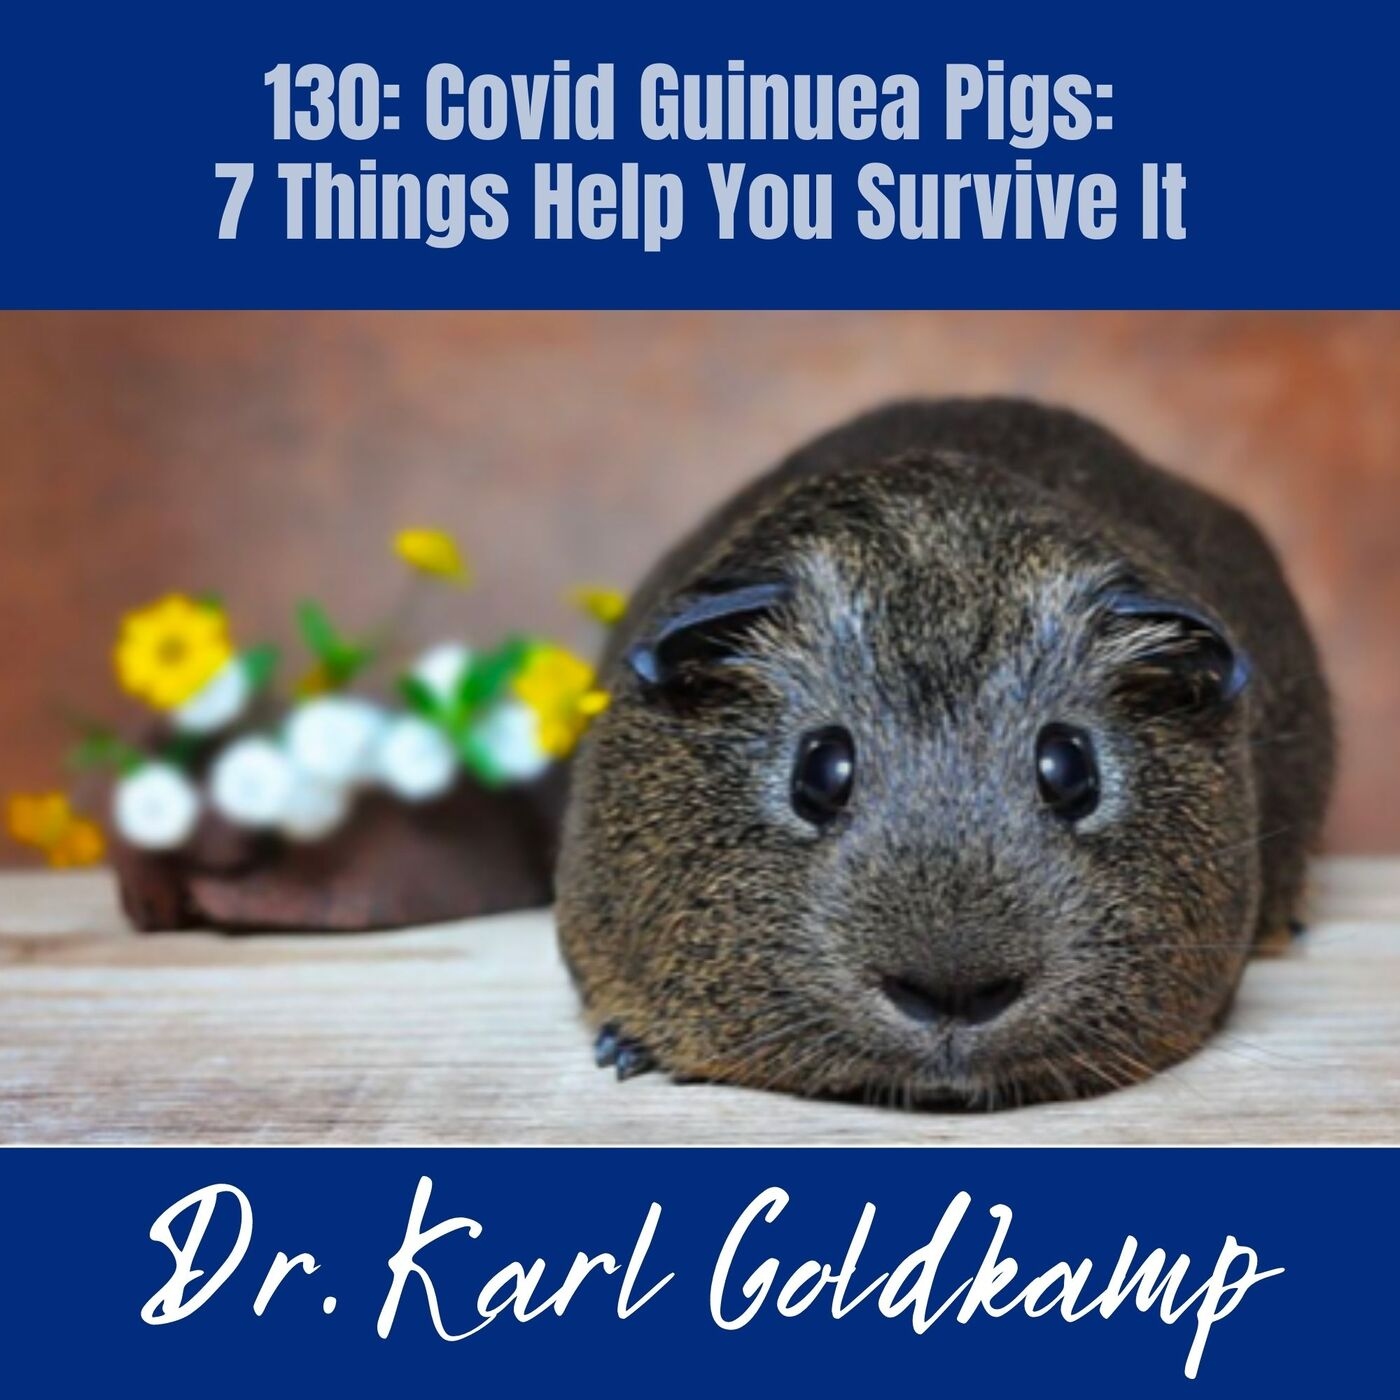 130: Covid Guinuea Pigs: 7 Things Help You Survive It